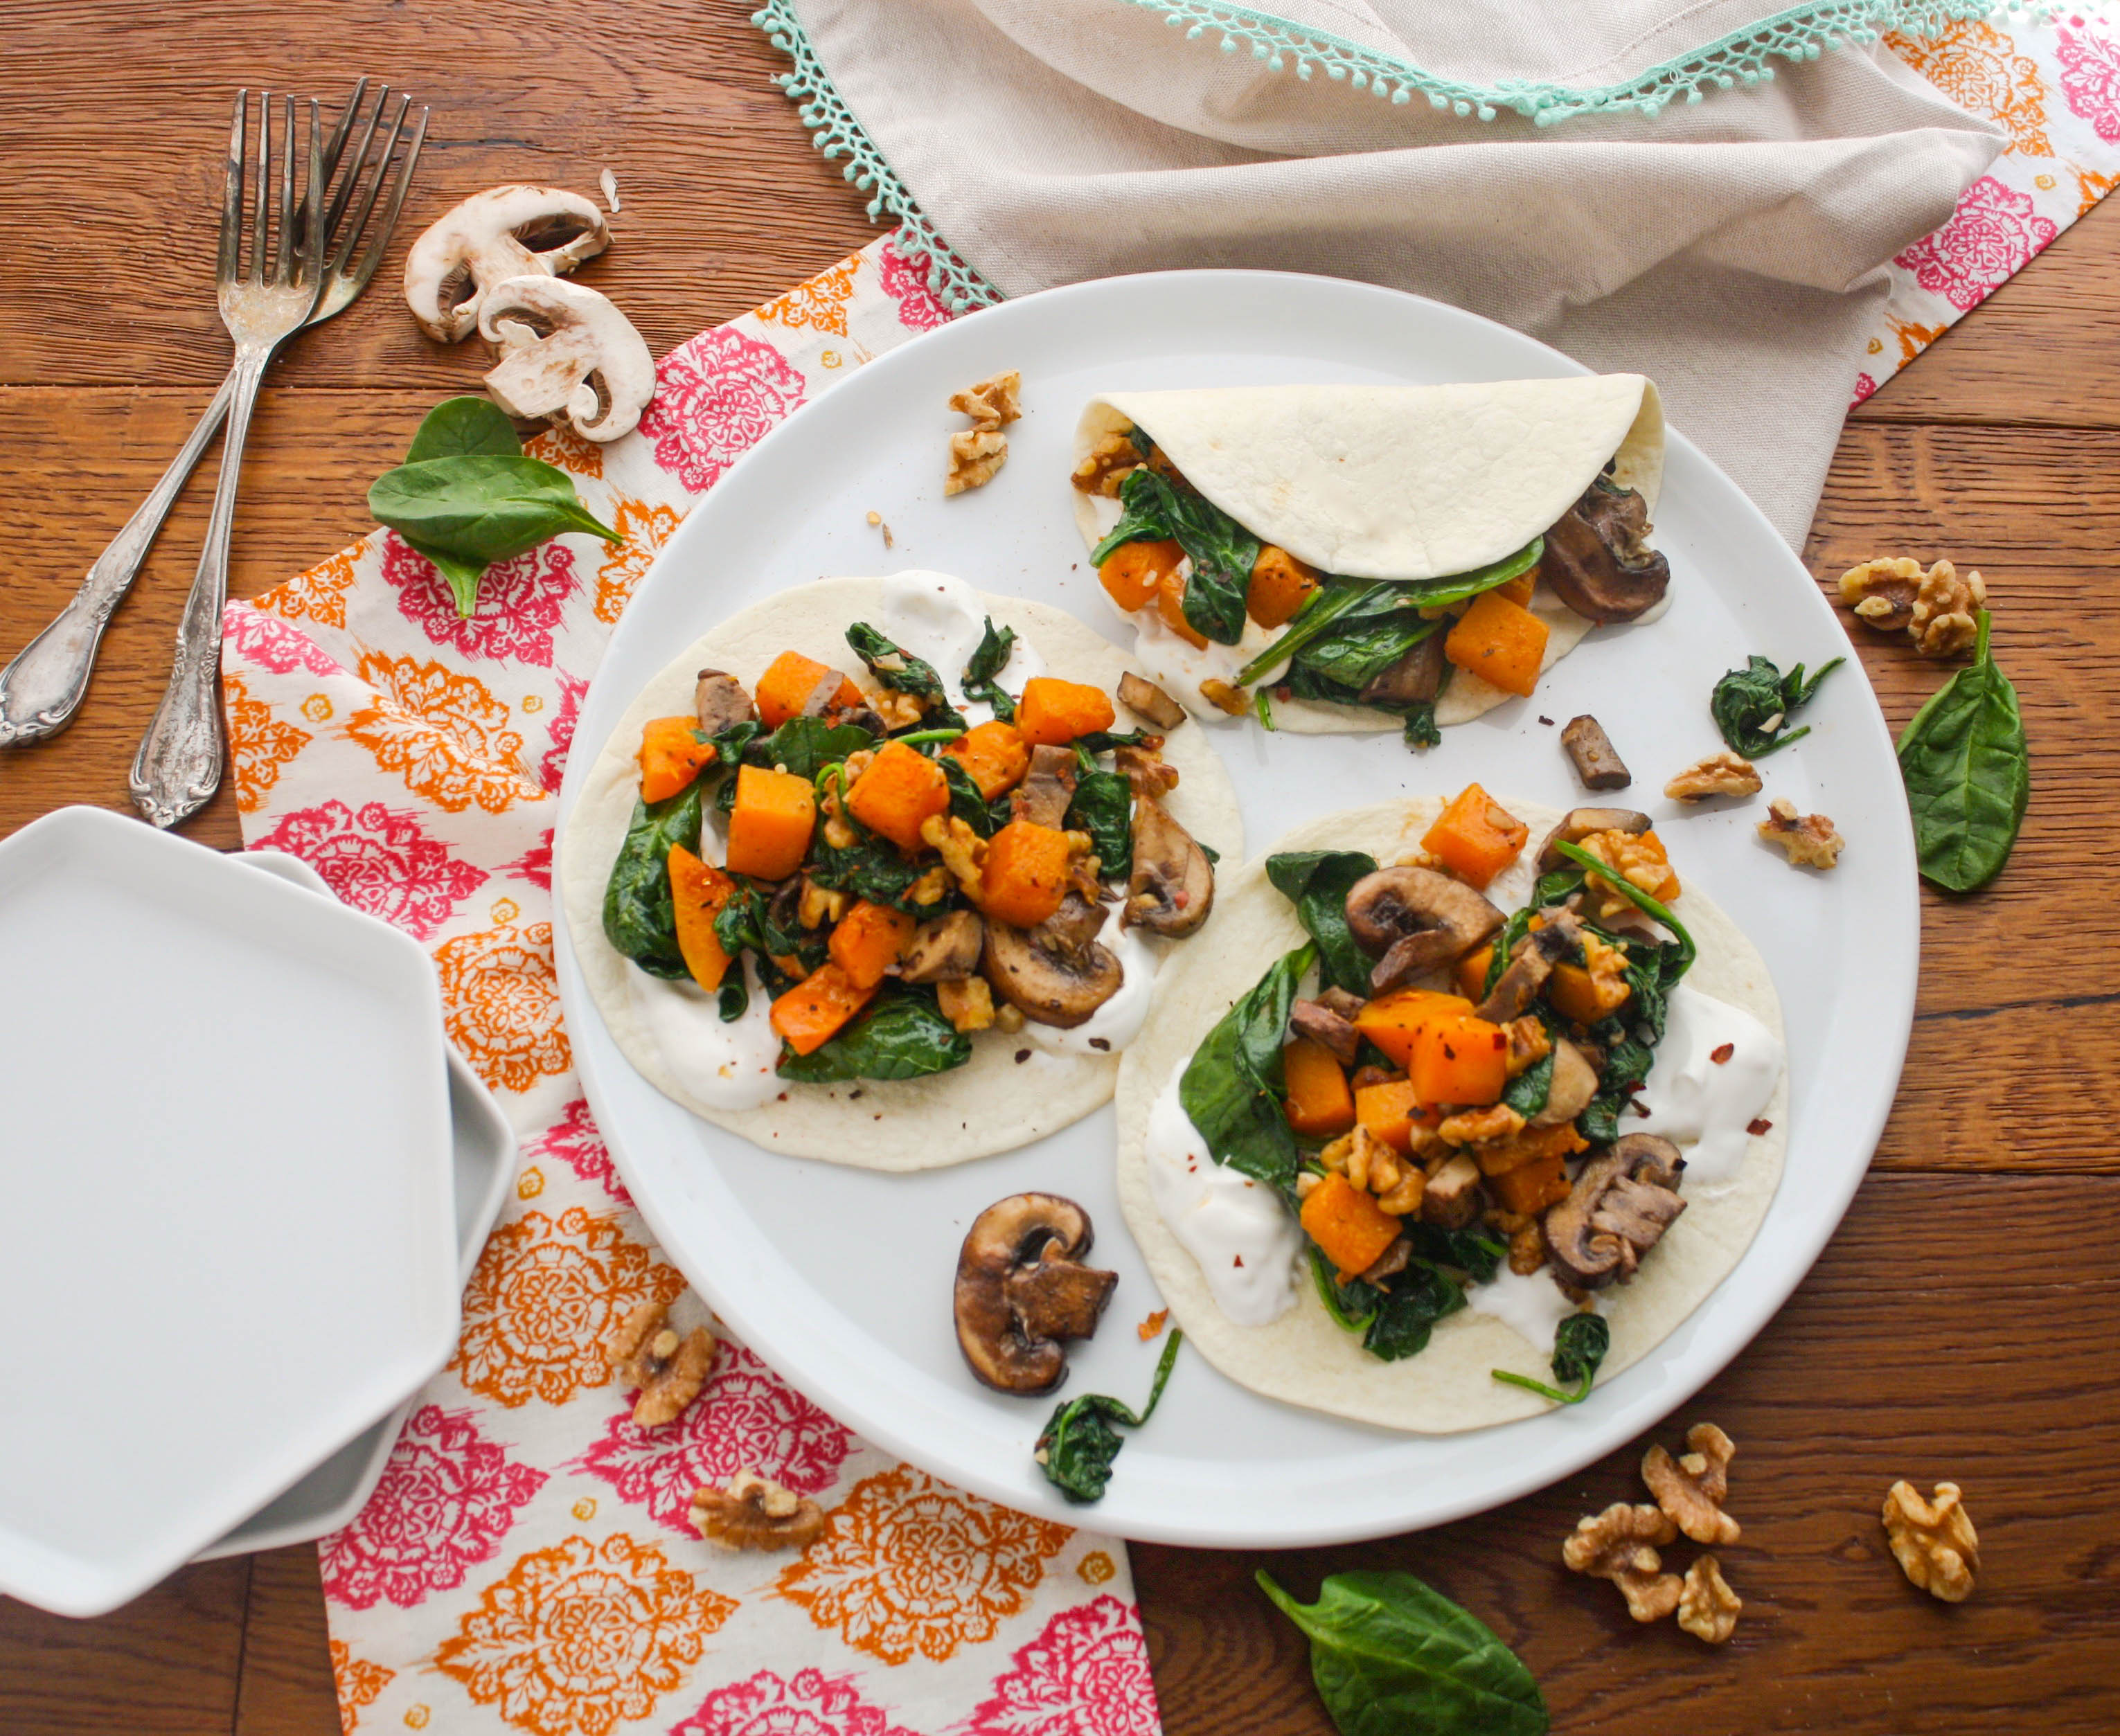 Butternut Squash, Spinach, and Mushroom Tacos are a tasty vegetarian and seasonal meal. You'll love these tacos!